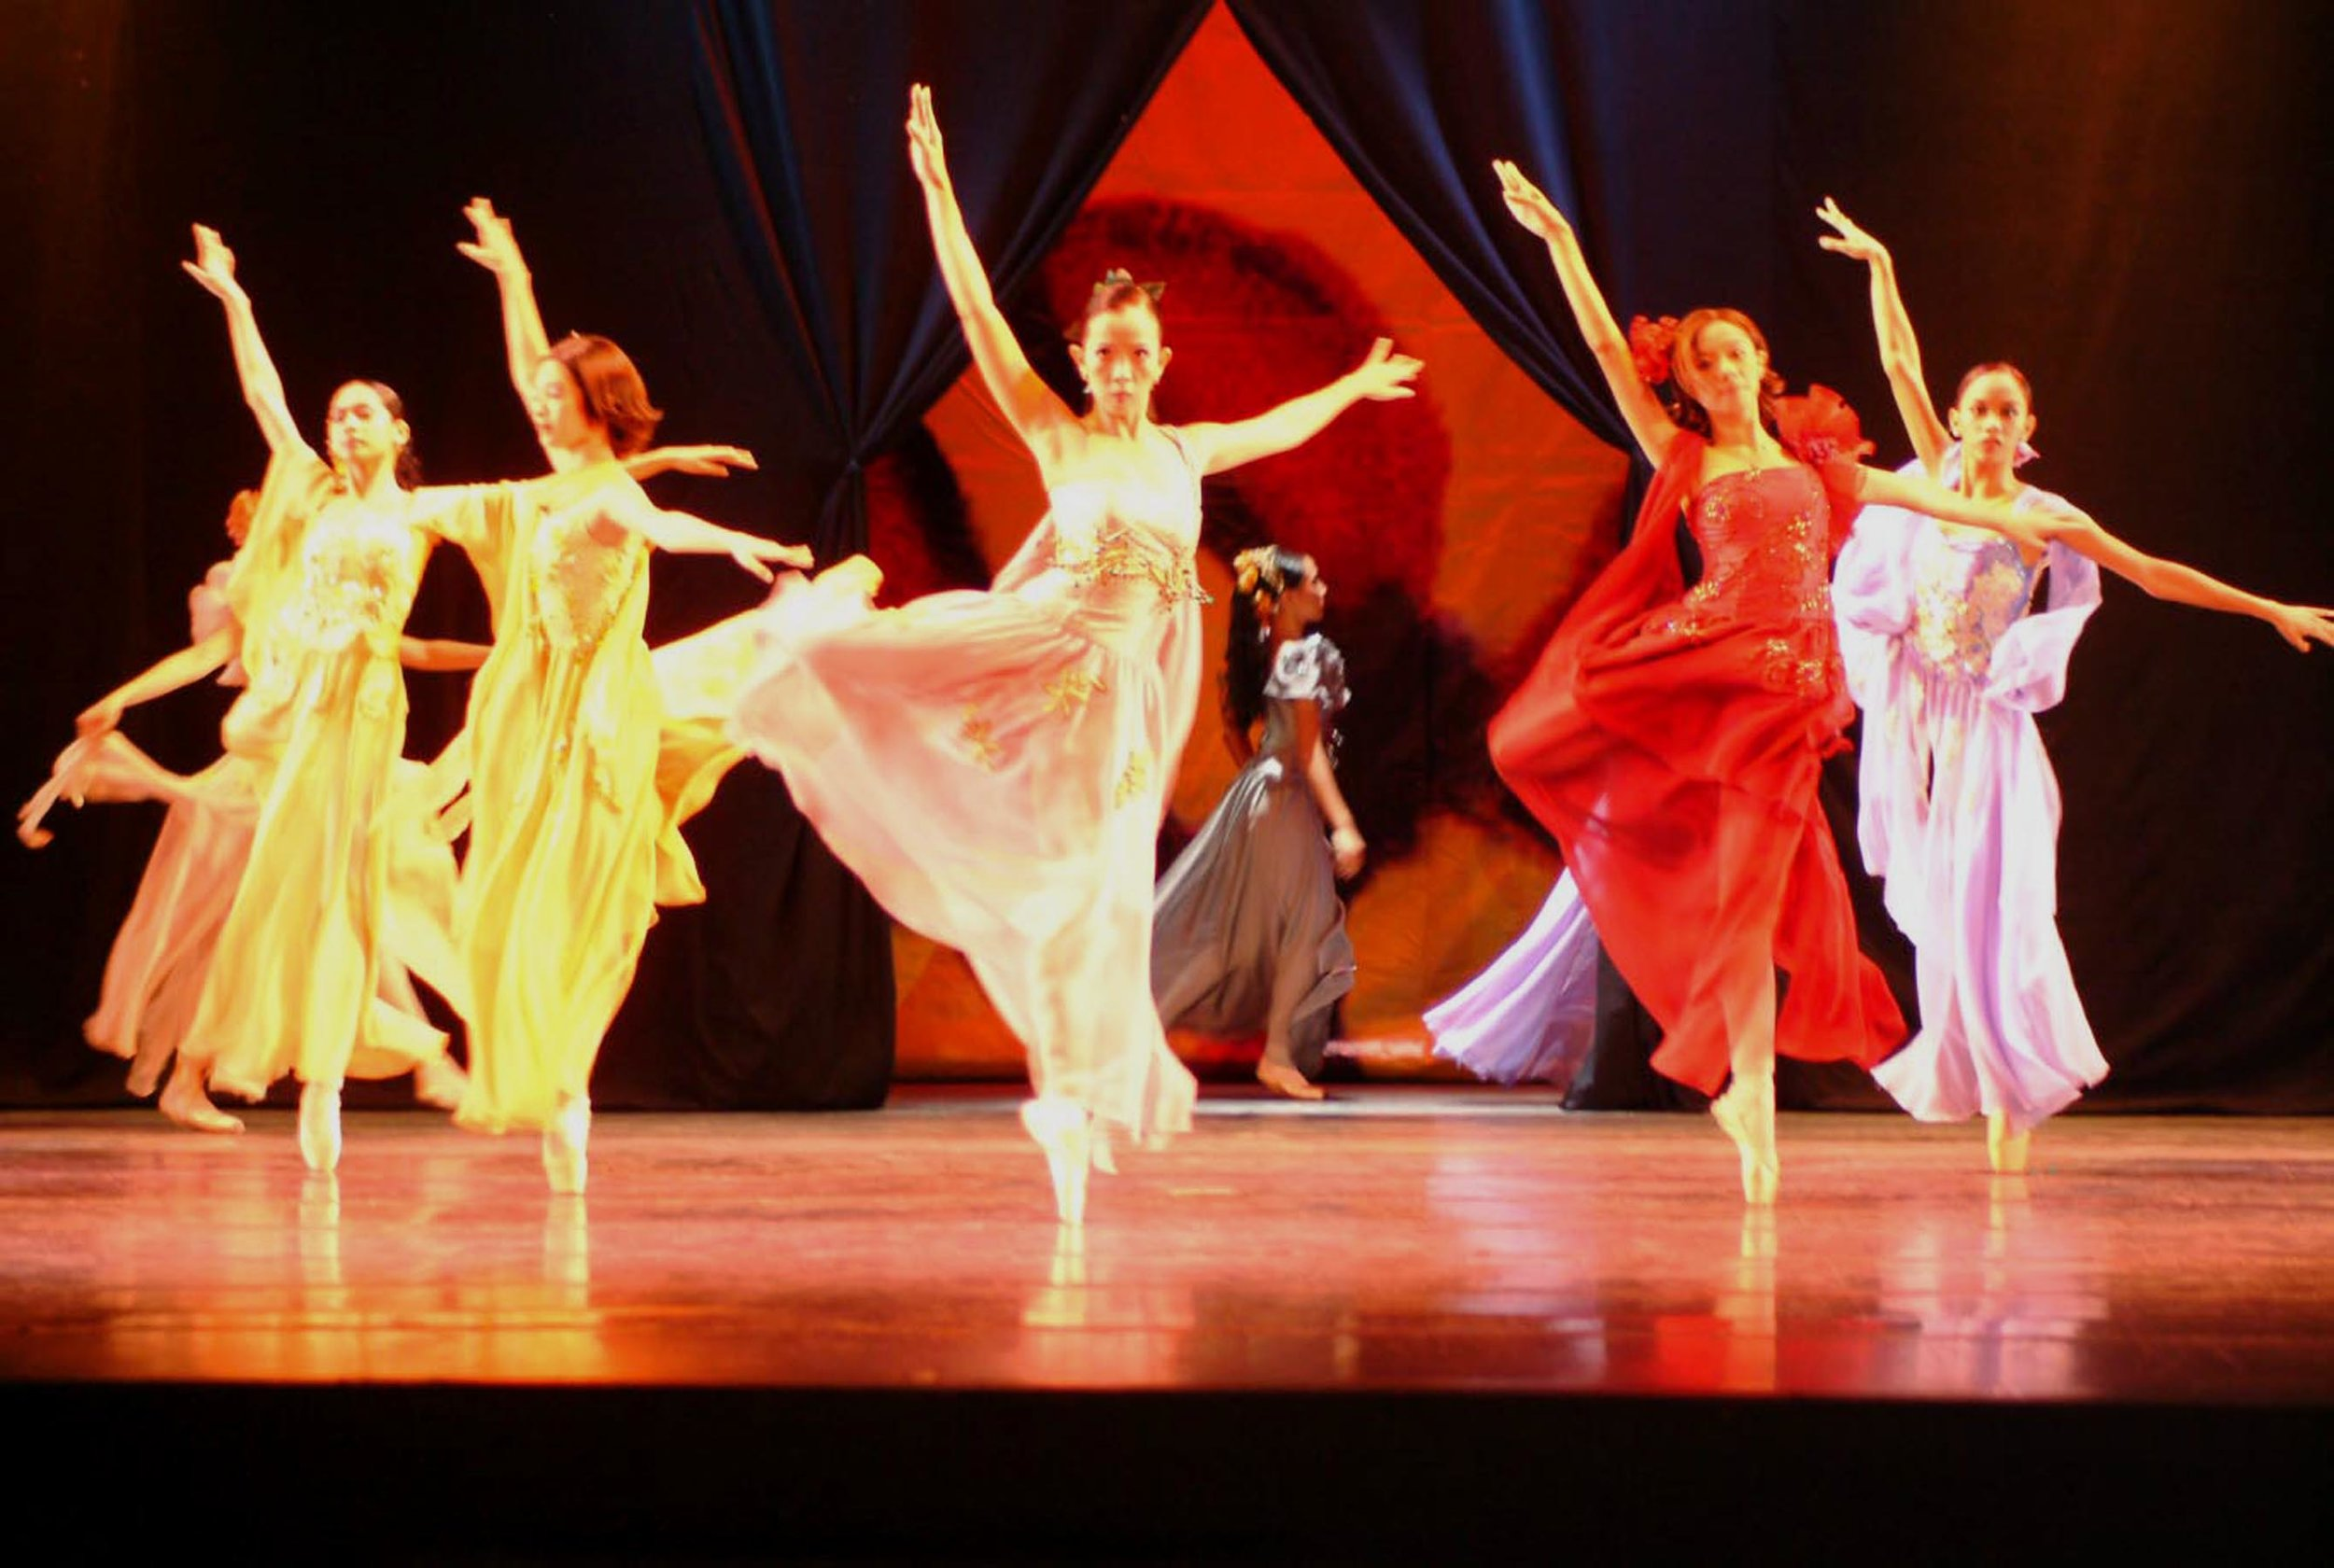 Tony Fabella's  Dalagang Pilipina  is a fusion of ballet and fashion, with the ballerinas showing their moves while wearing gowns by designer Auggie Cordero in a tribute to the contemporary Filipina. Photo by Ocs Alvarez